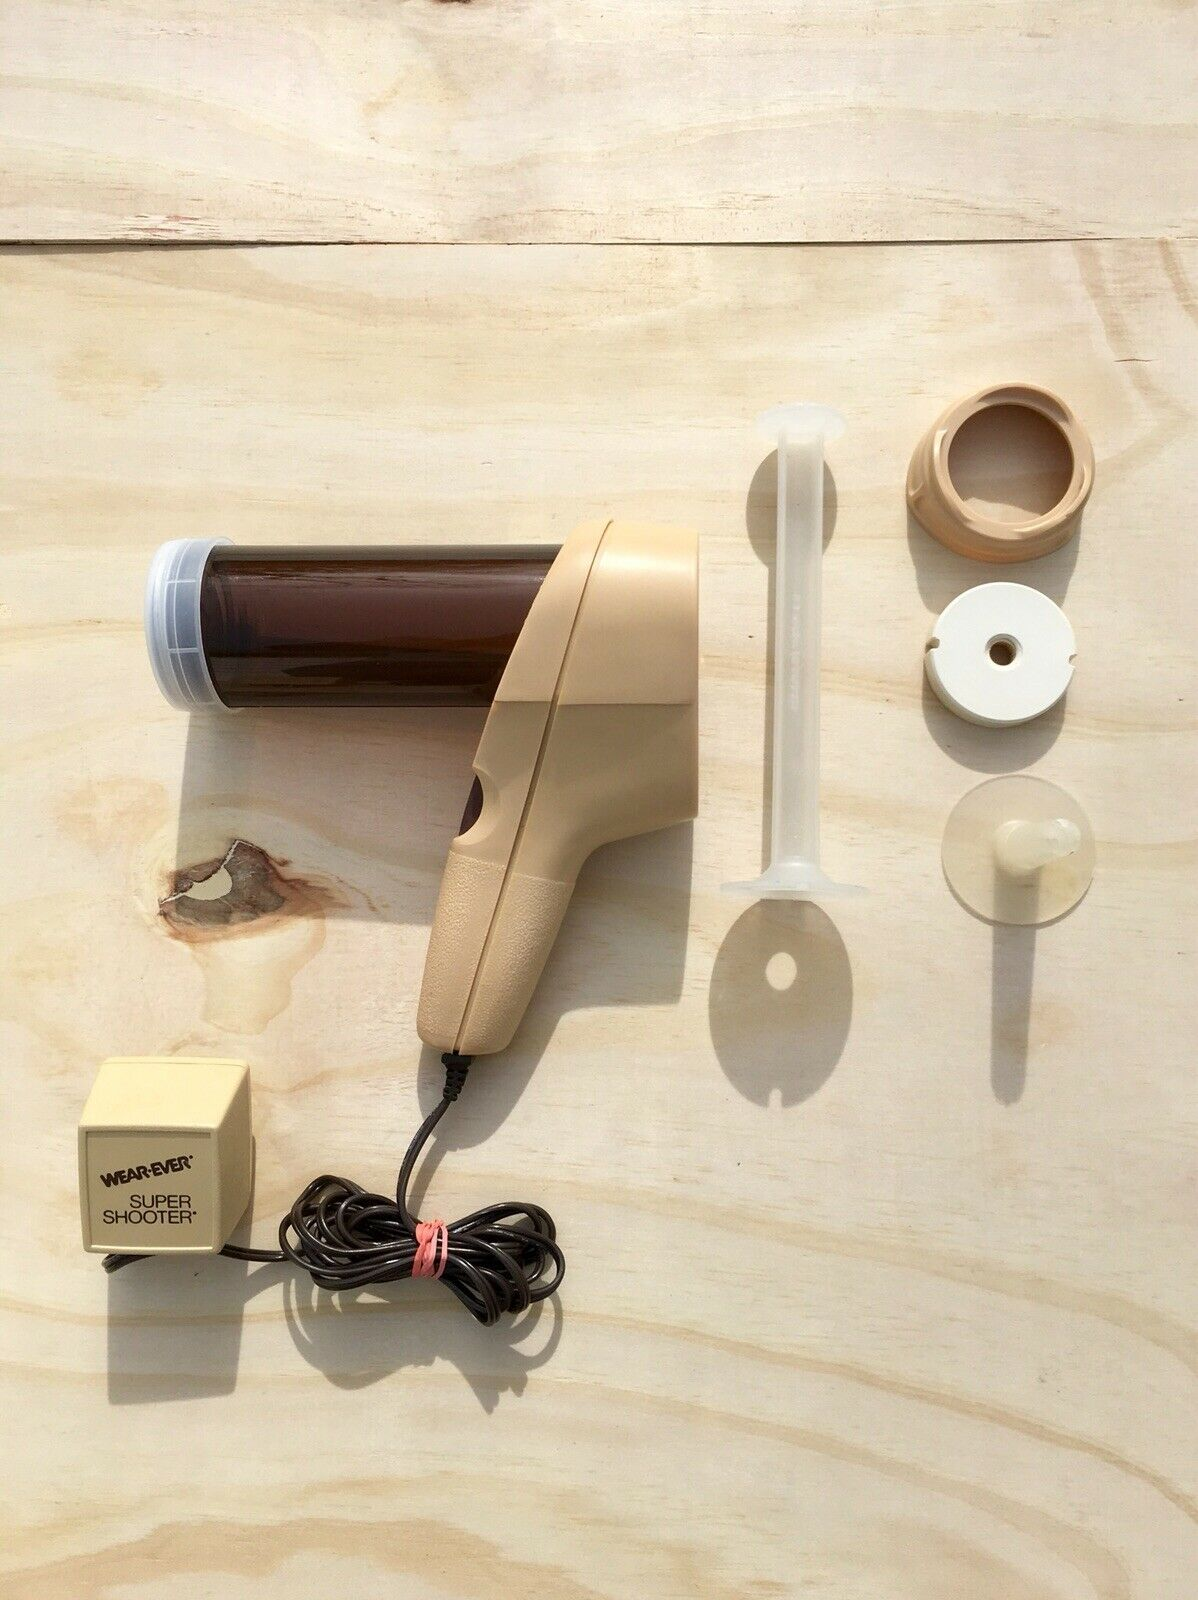 Wear-Ever Super Shooter  The Electric Foodgun  cookie canapé cooky press bakery